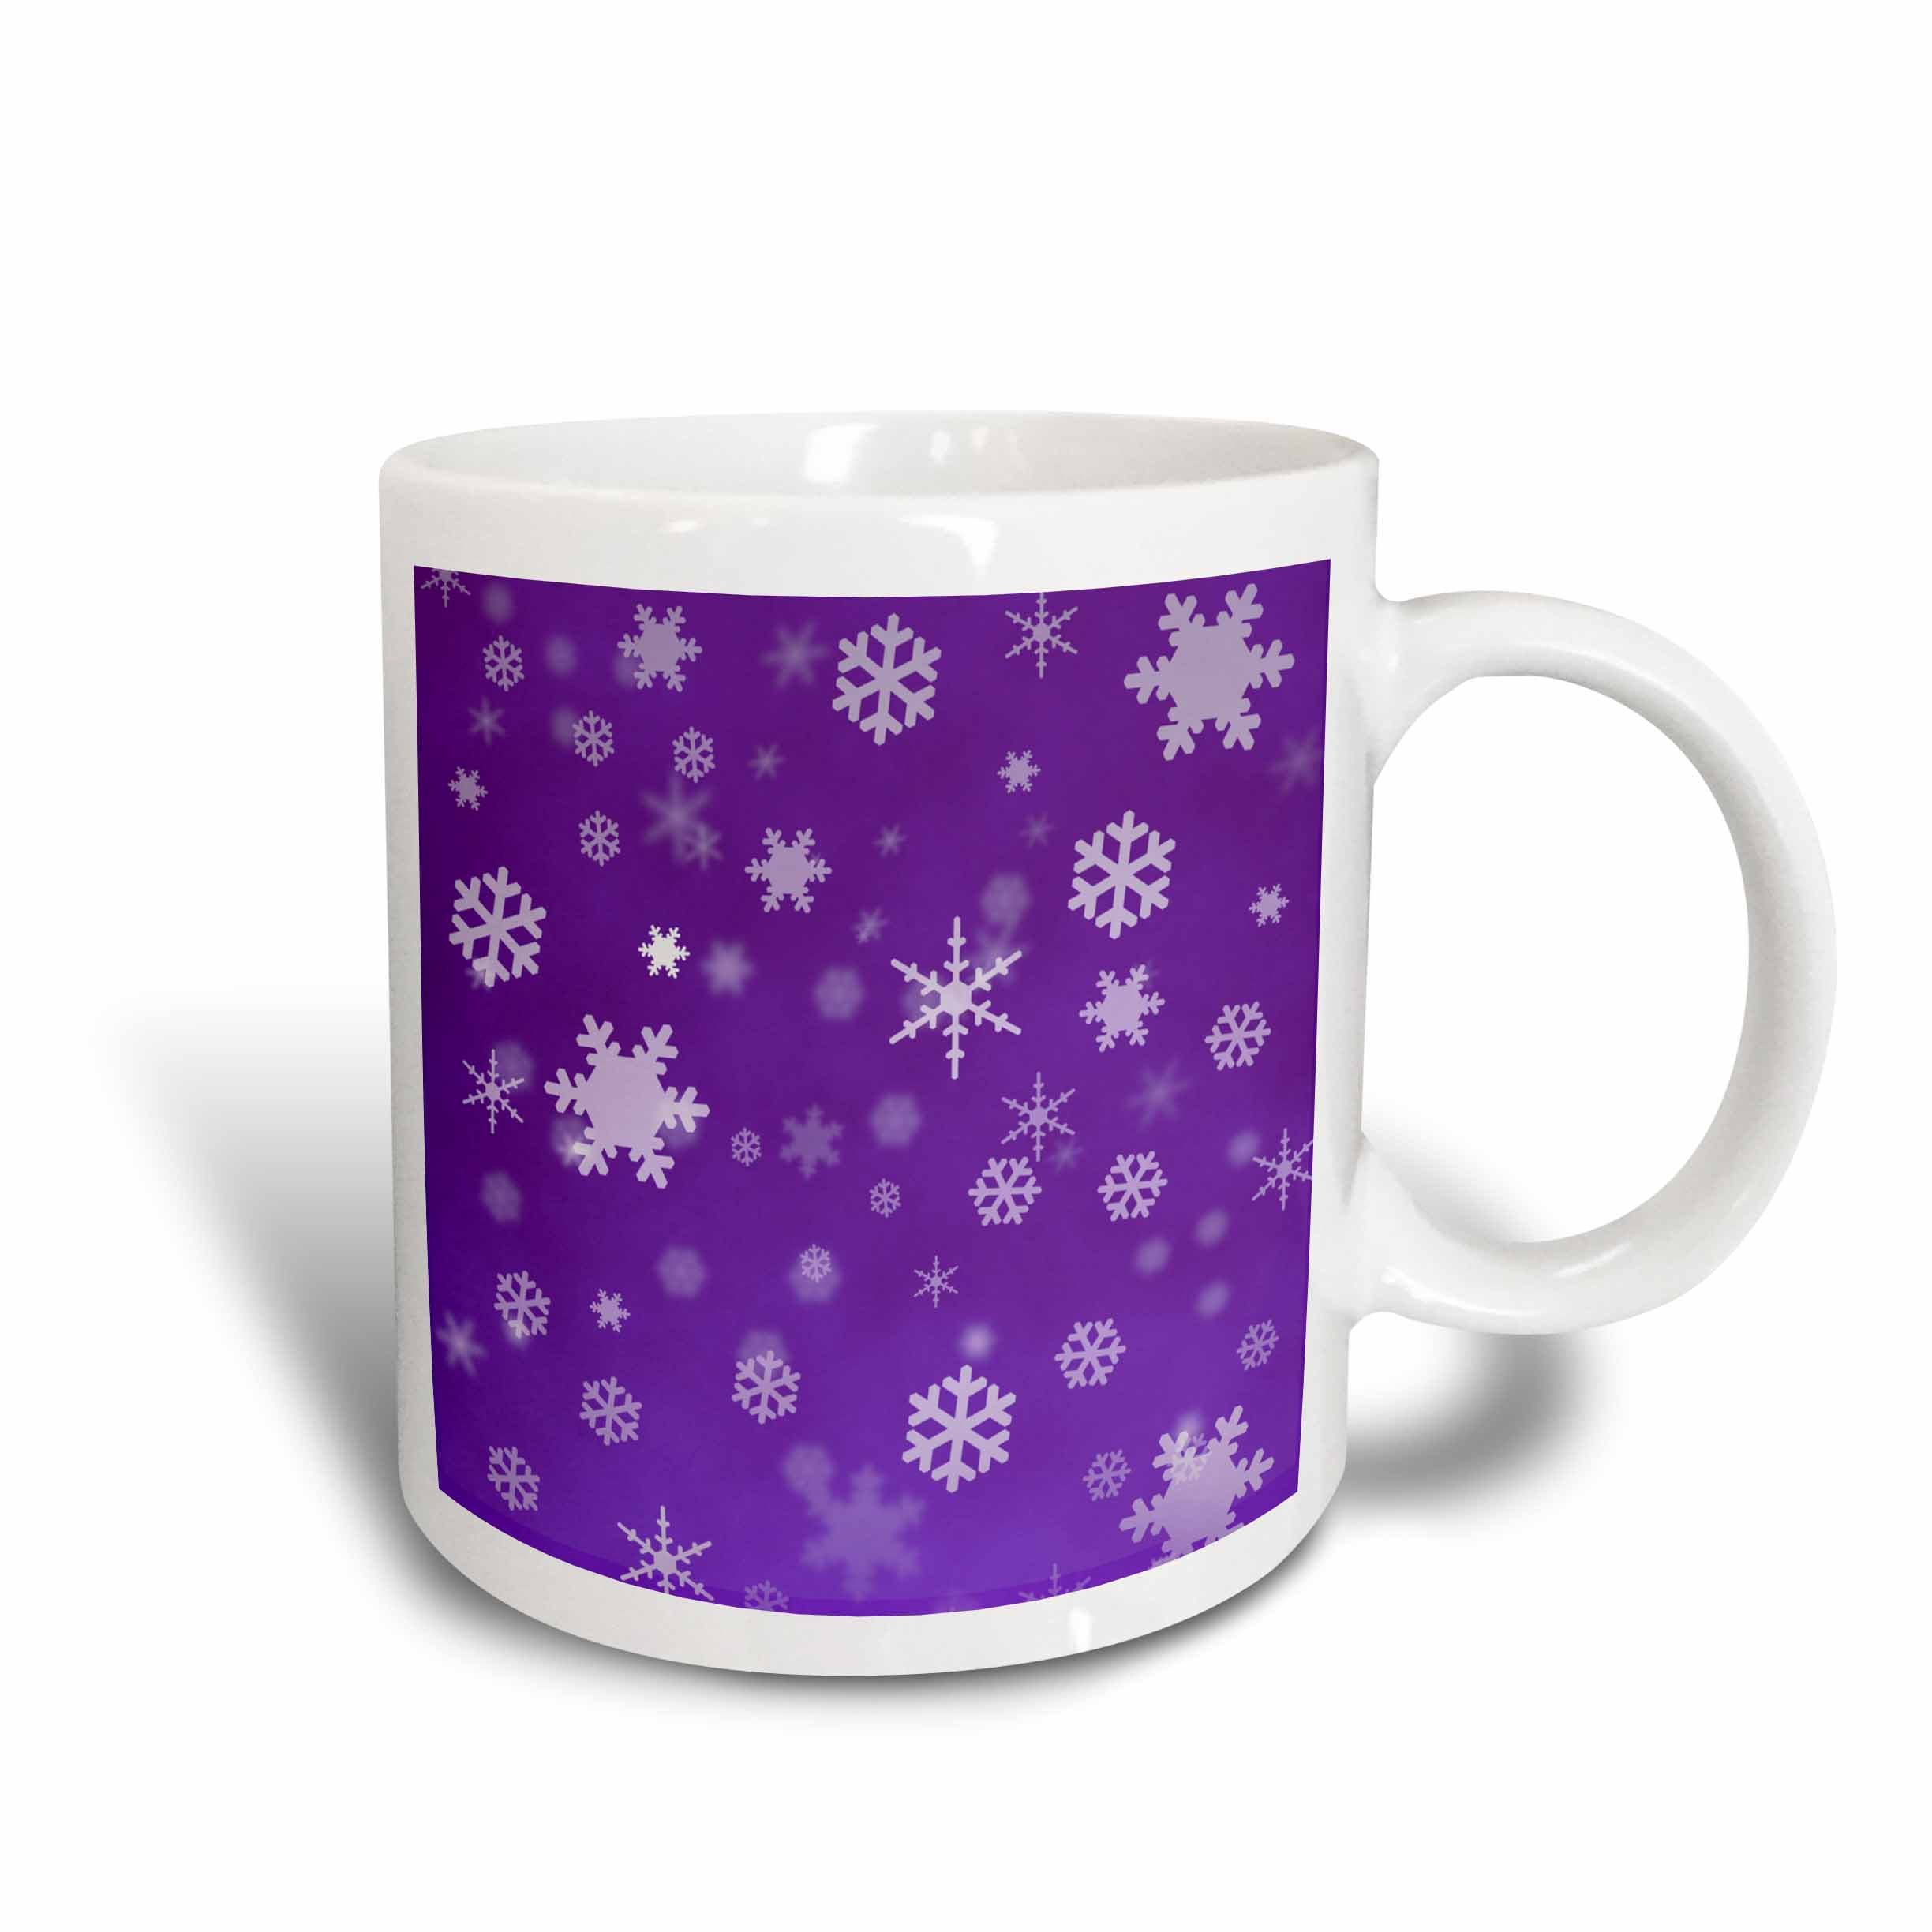 3dRose Winter Snowflakes Purple, Ceramic Mug, 15-ounce